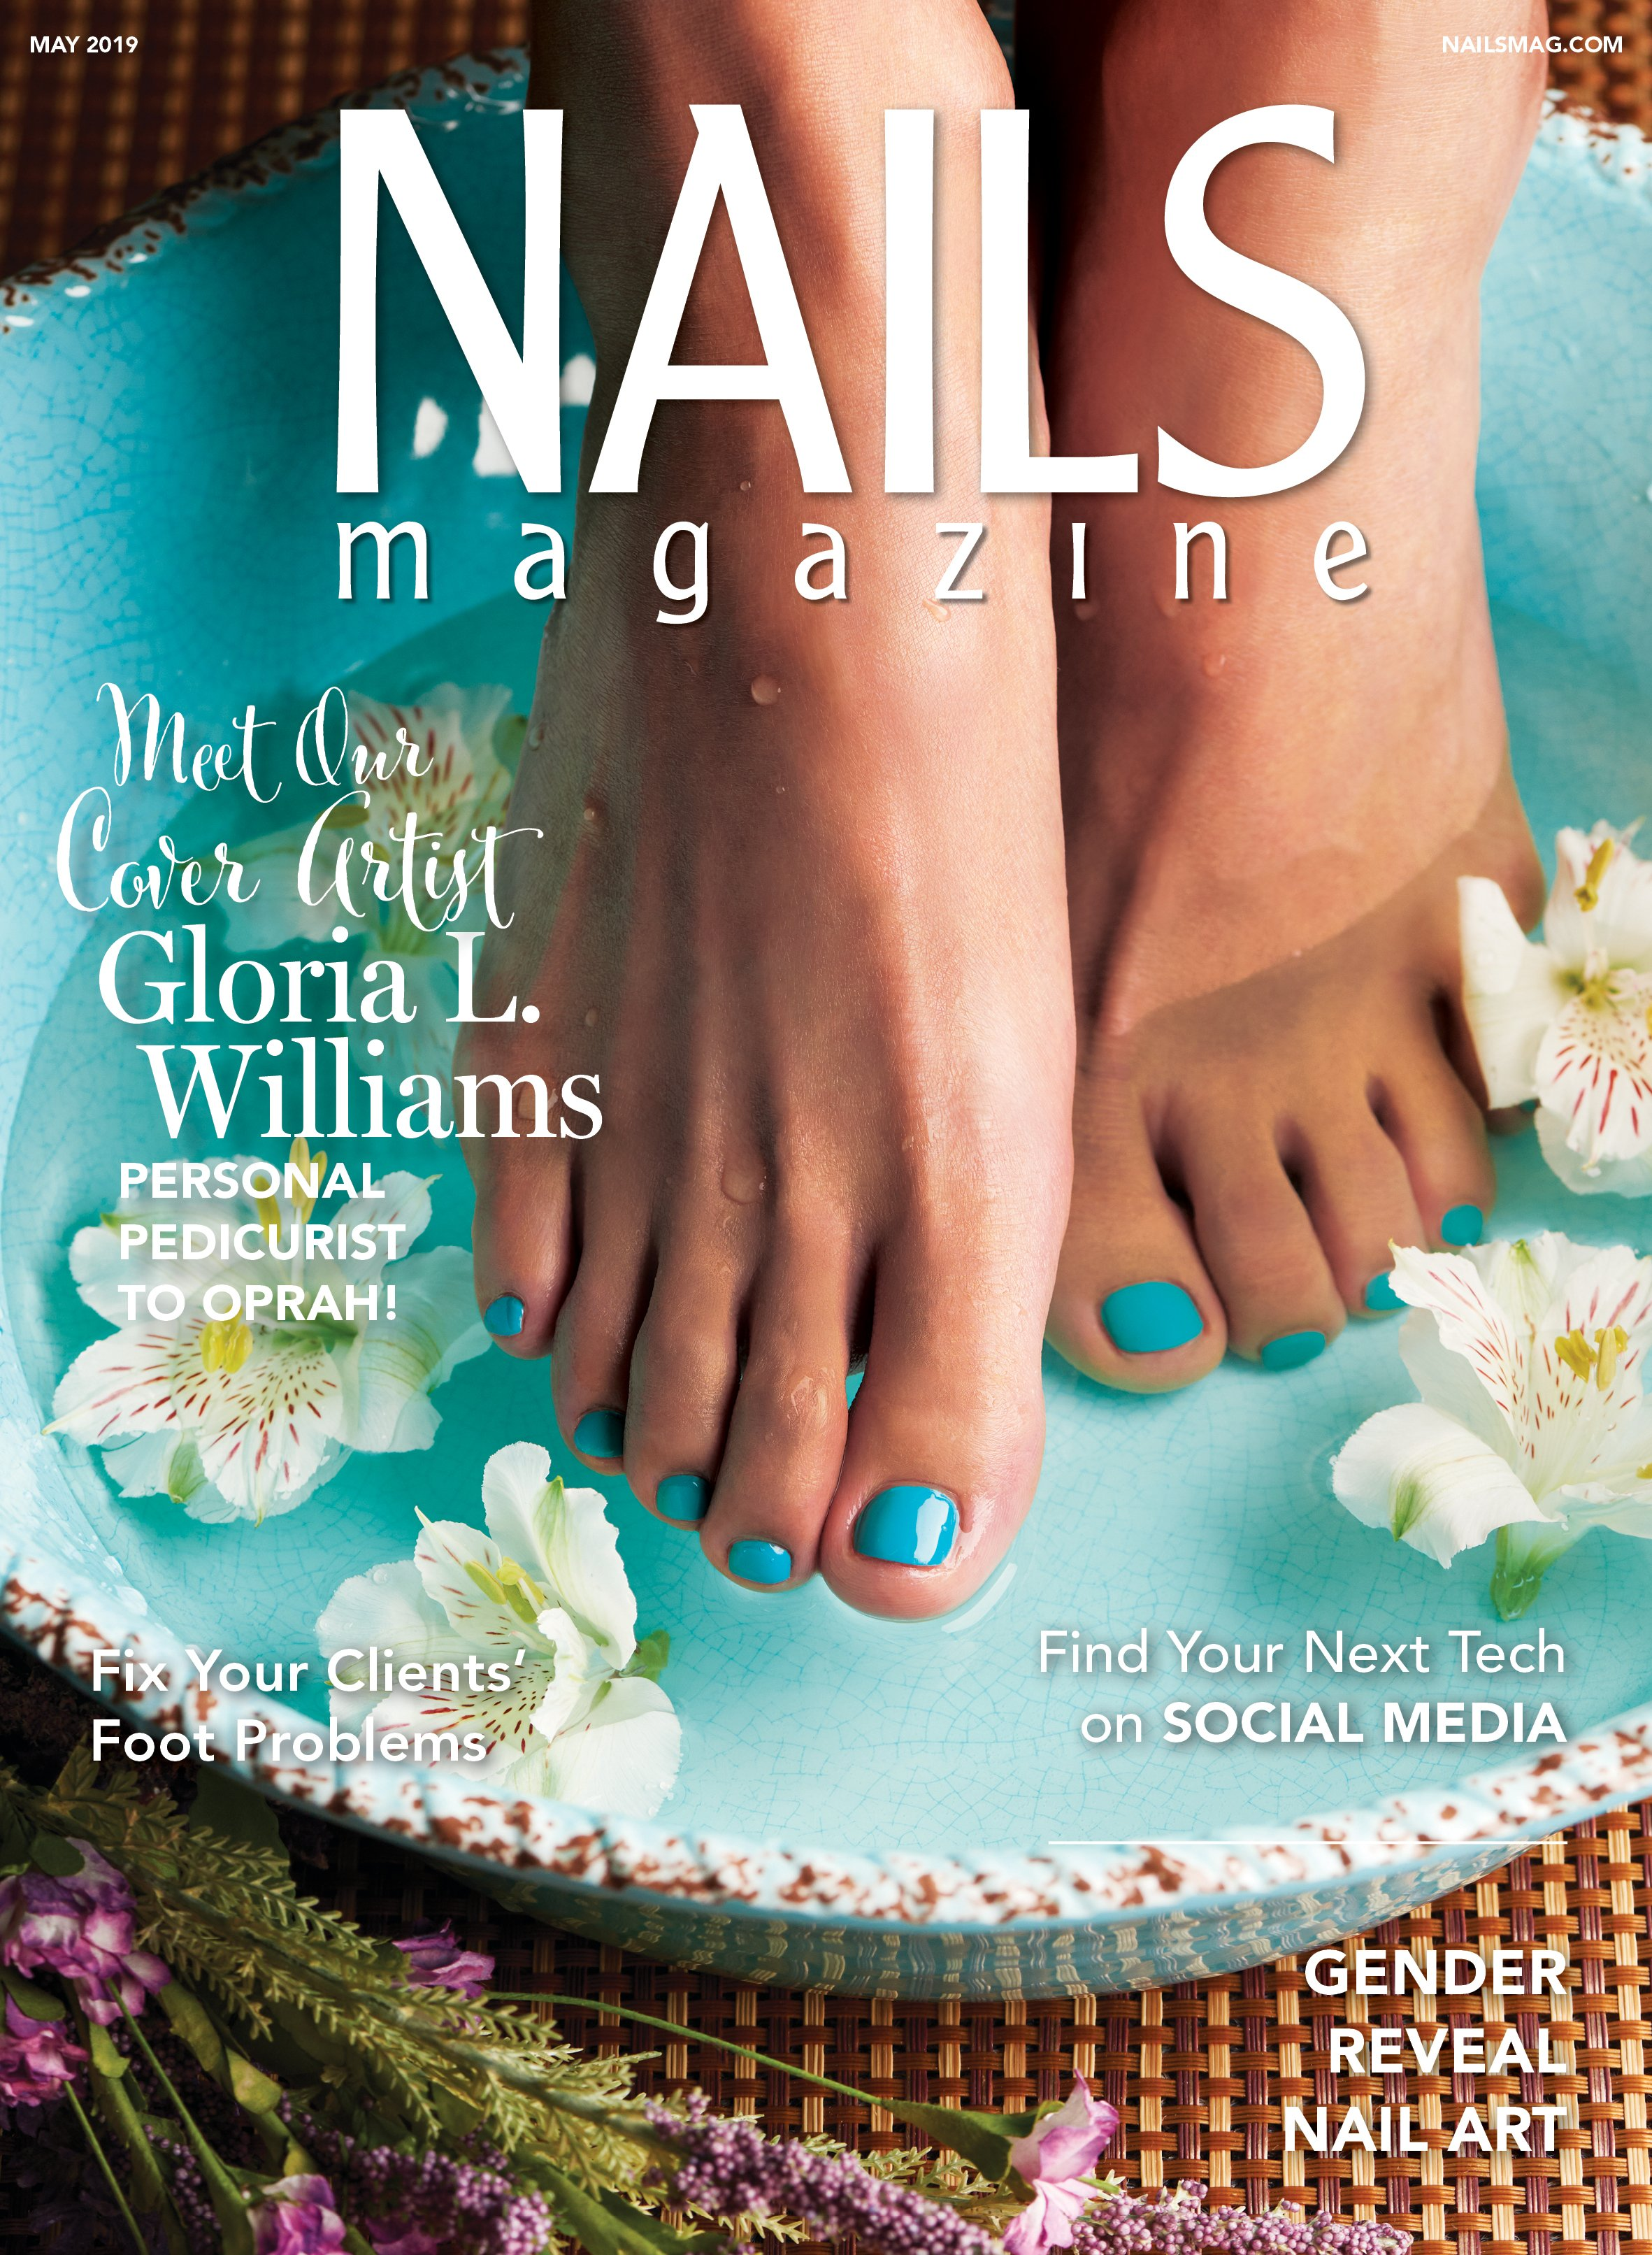 NAILS Magazine | May 2019 Issue